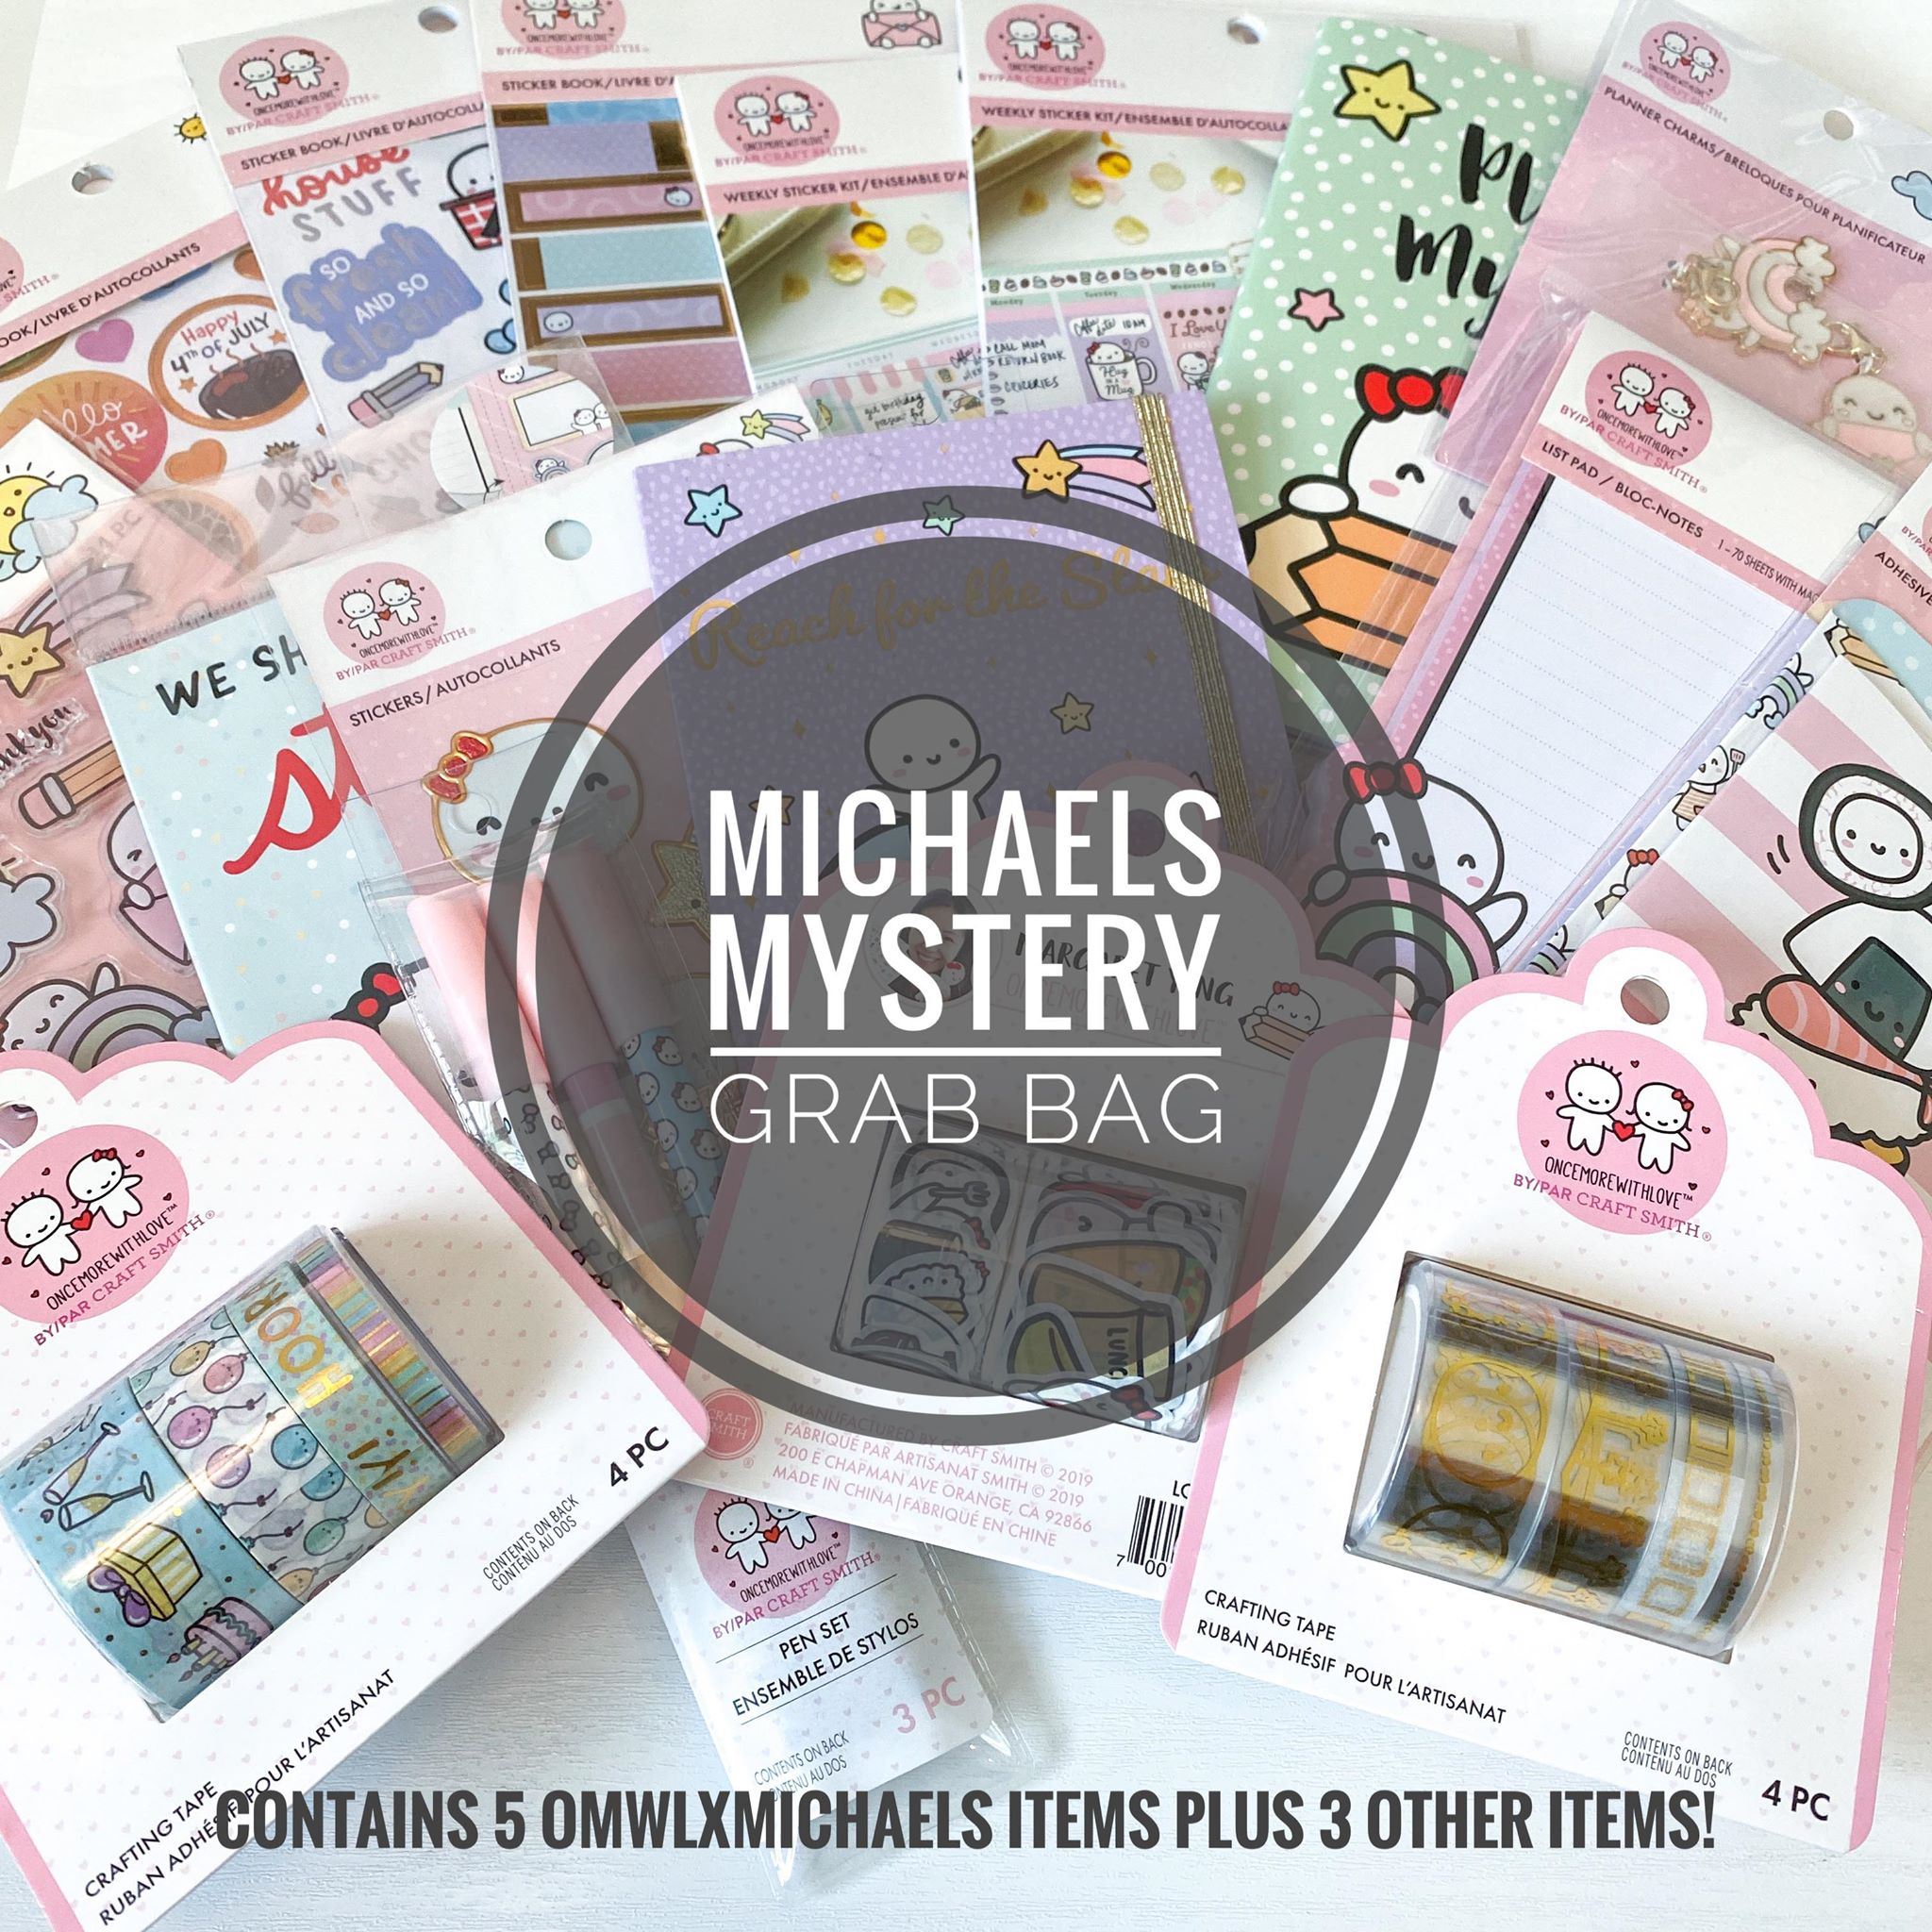 MICHAELS Mystery Grab Bag